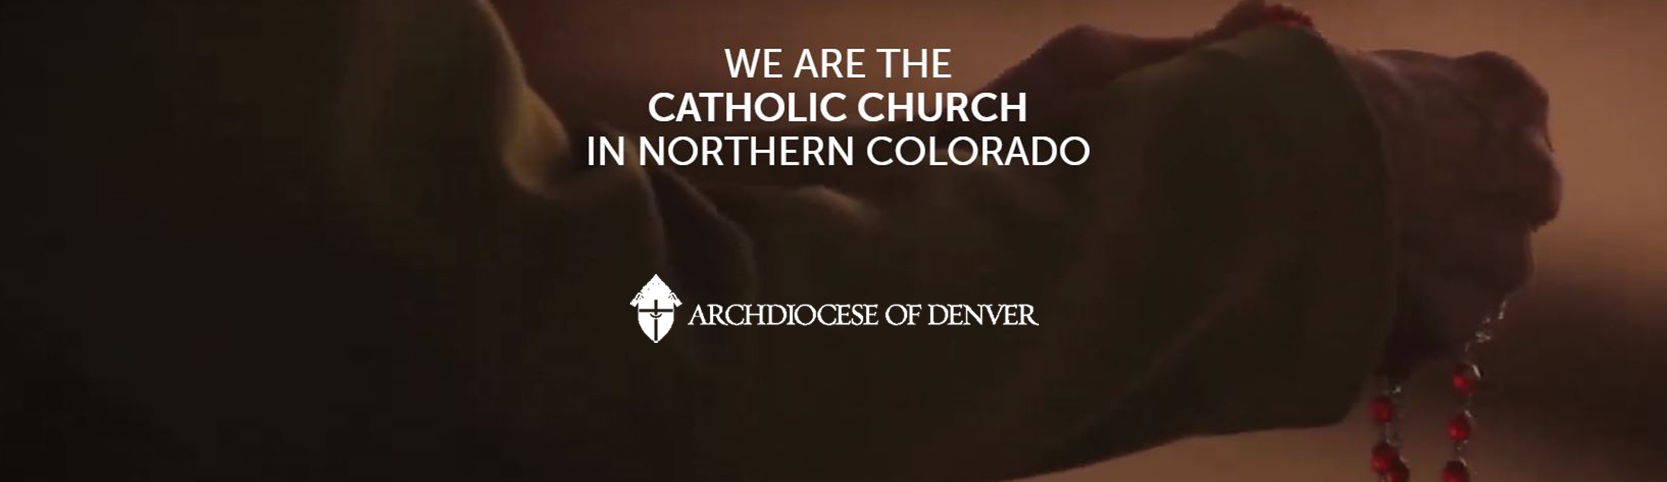 Archdiocese of Denver